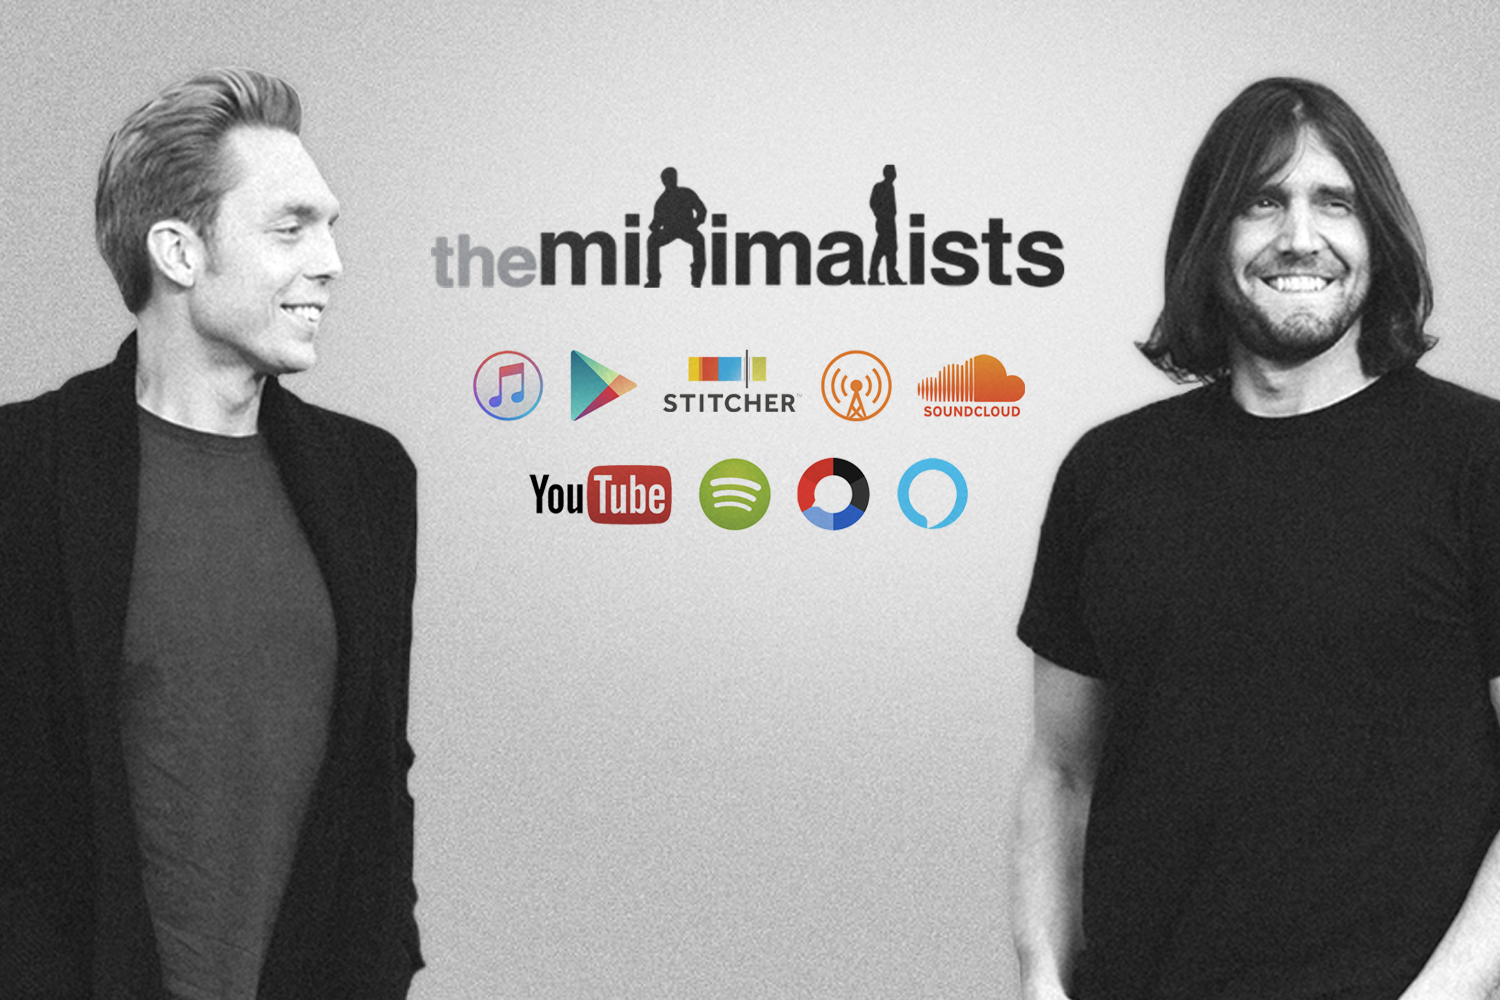 The Minimalists Podcast | The Minimalists